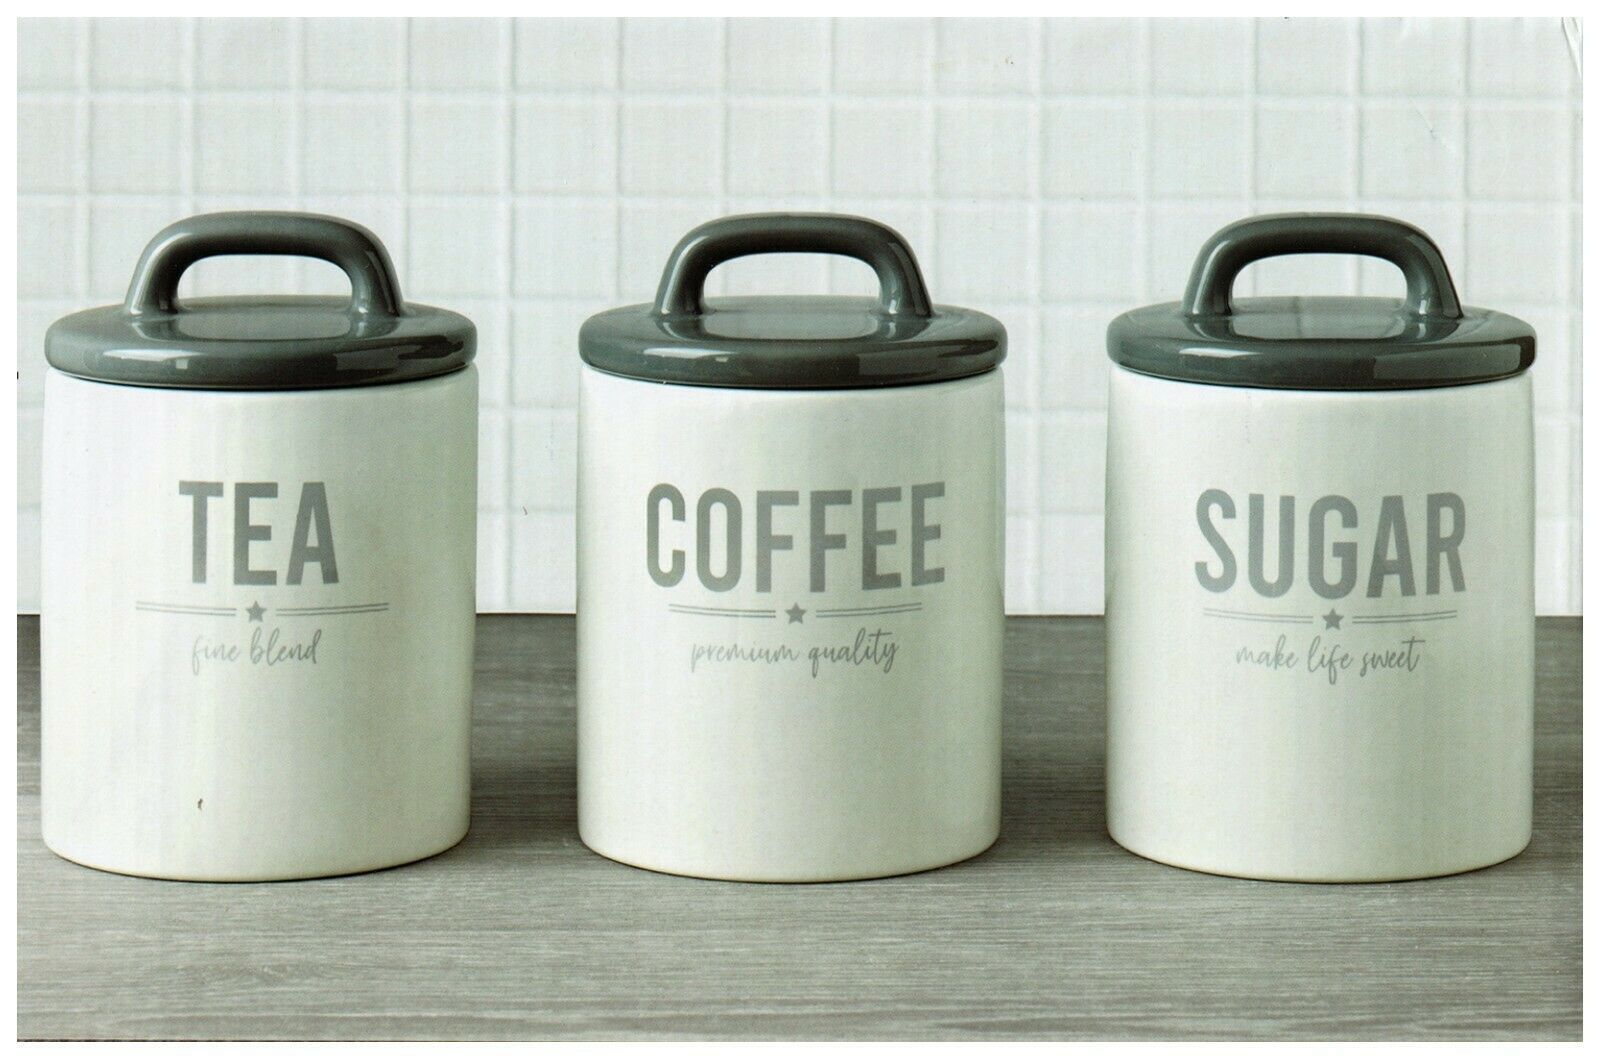 Vintage Retro Style Text Ceramic Tea Coffee Sugar Canisters Storage Jar Set 3 Uk 1 Of 2only 0 Available